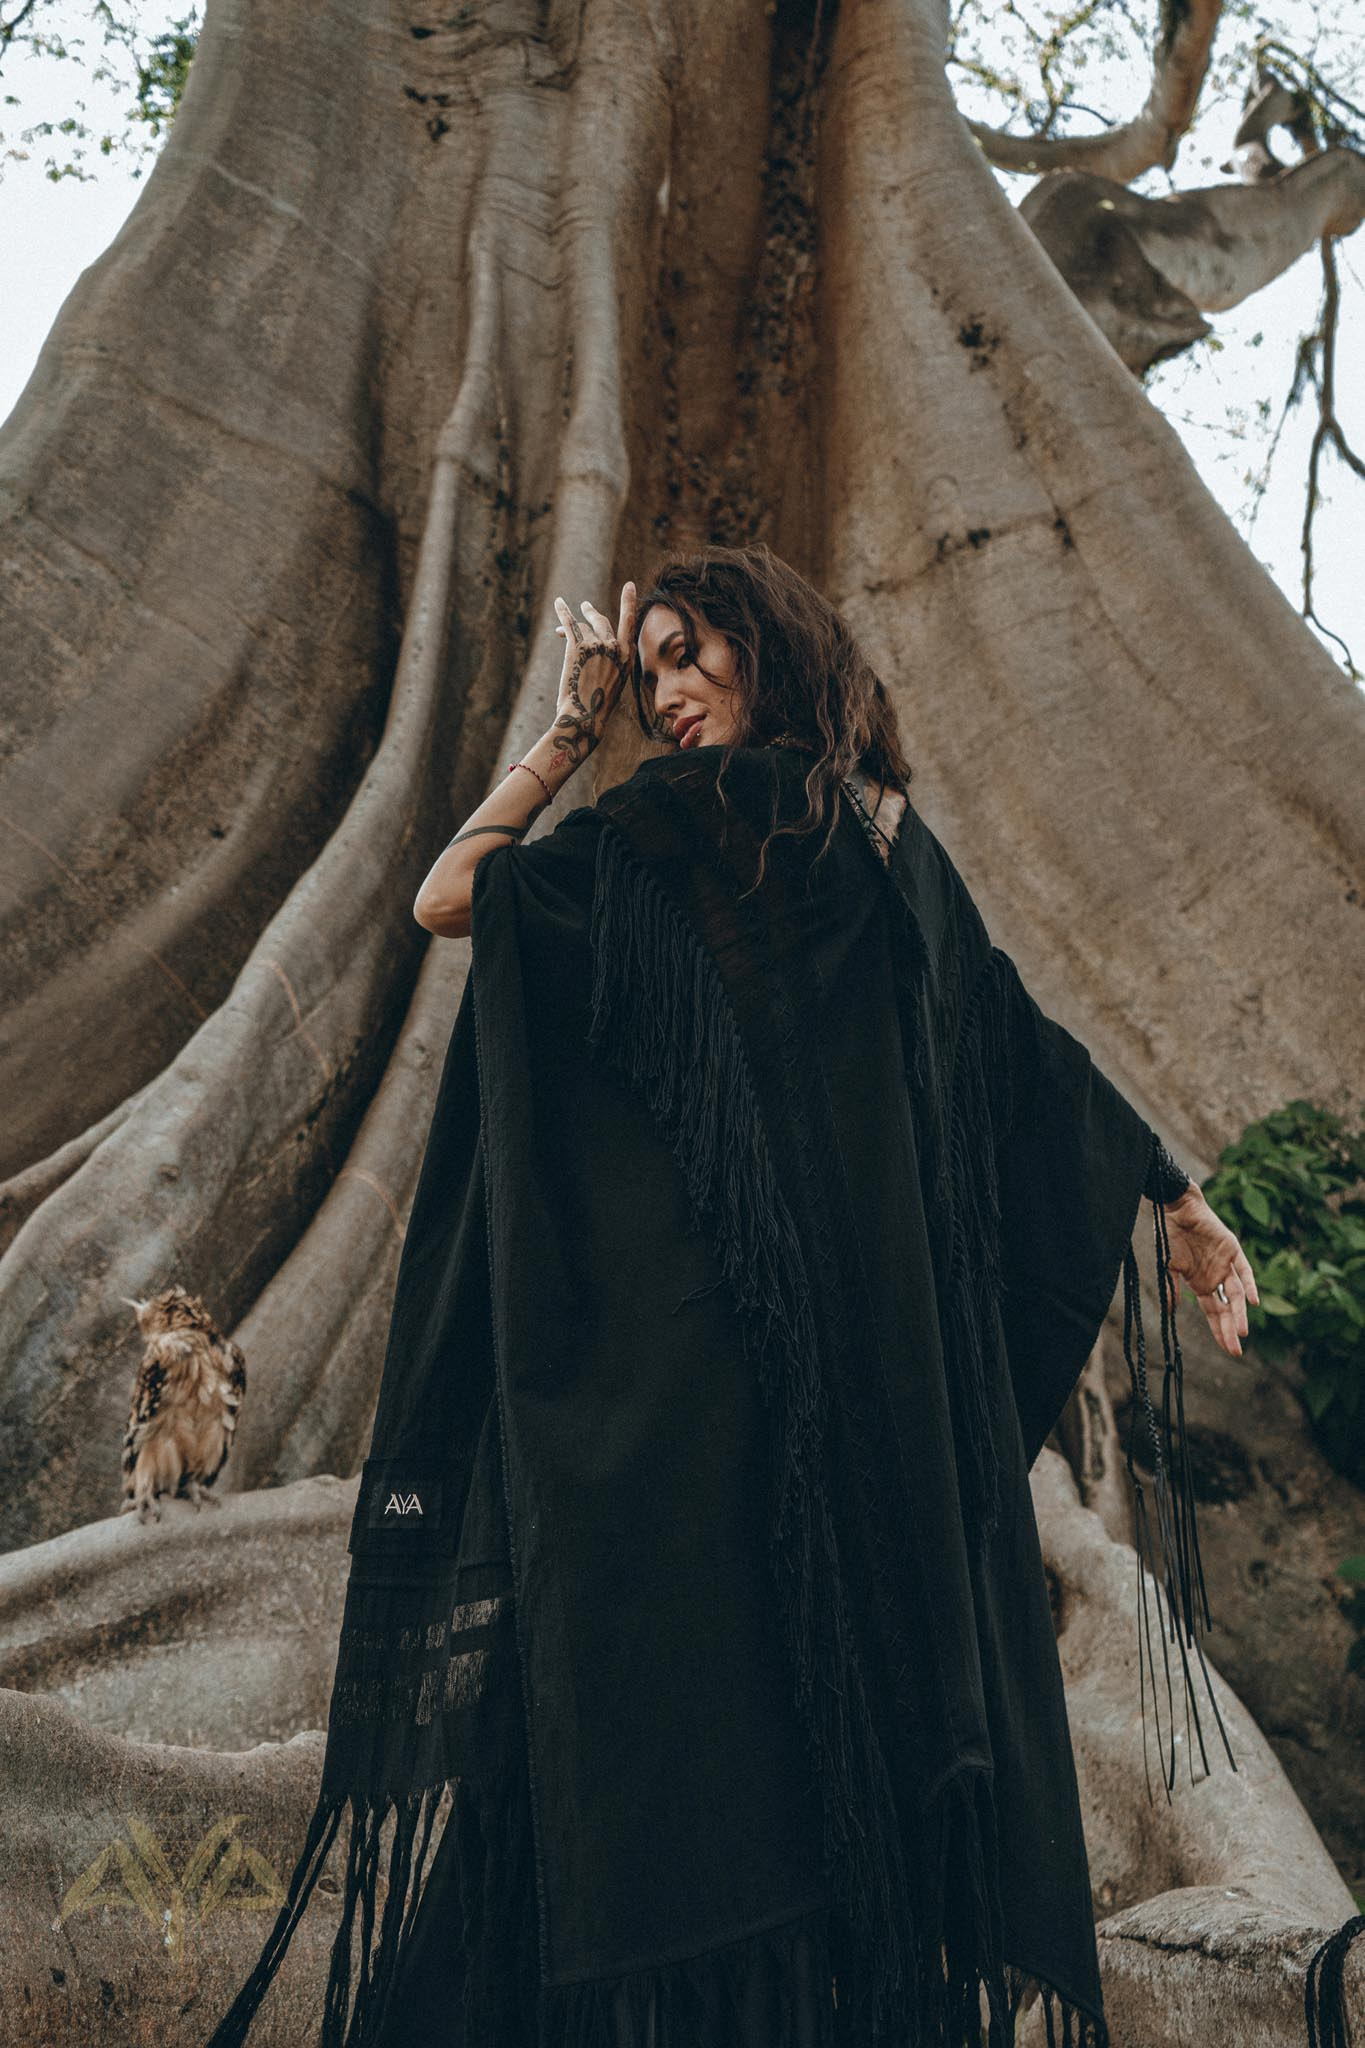 NEW! Black Boho Poncho • Long Poncho Robe Cardigan • Maternity Cover up Cardigan - aya.eco